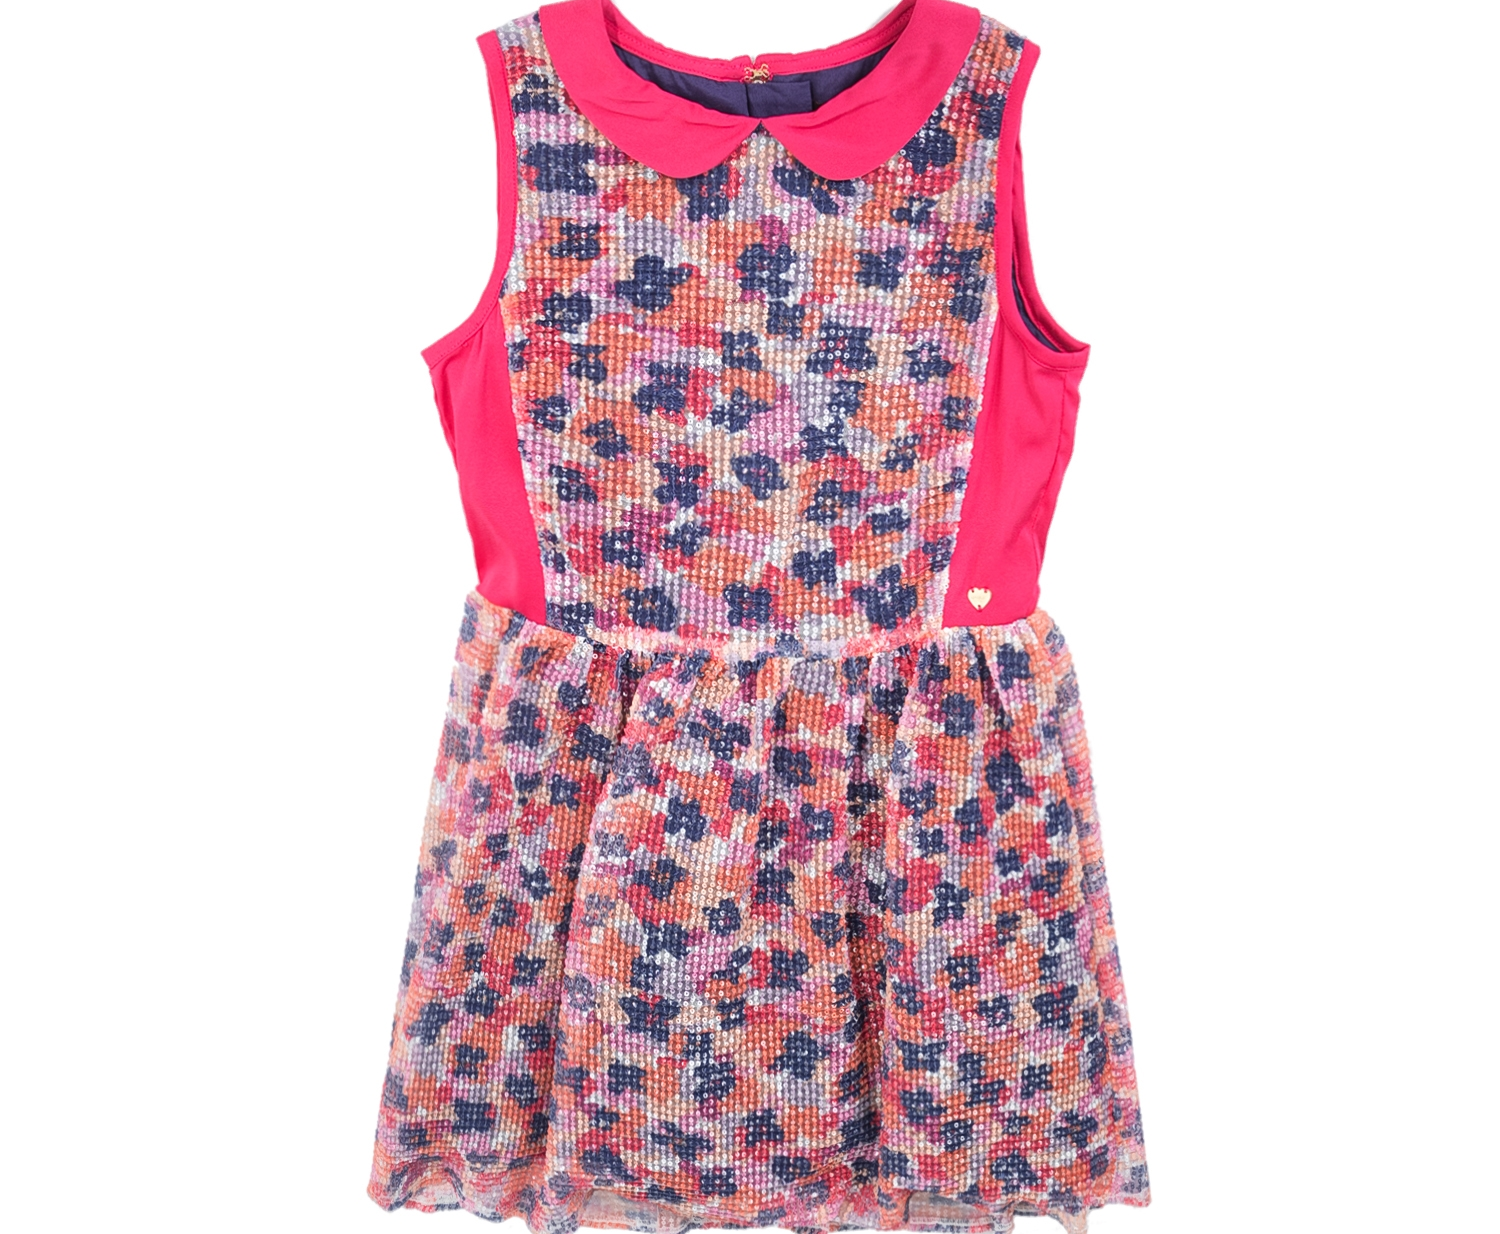 JUICY COUTURE KIDS - Φόρεμα JUICY COUTURE NOVEAU FLORAL SEQUIN PARTY με φλοράλ μοτίβο